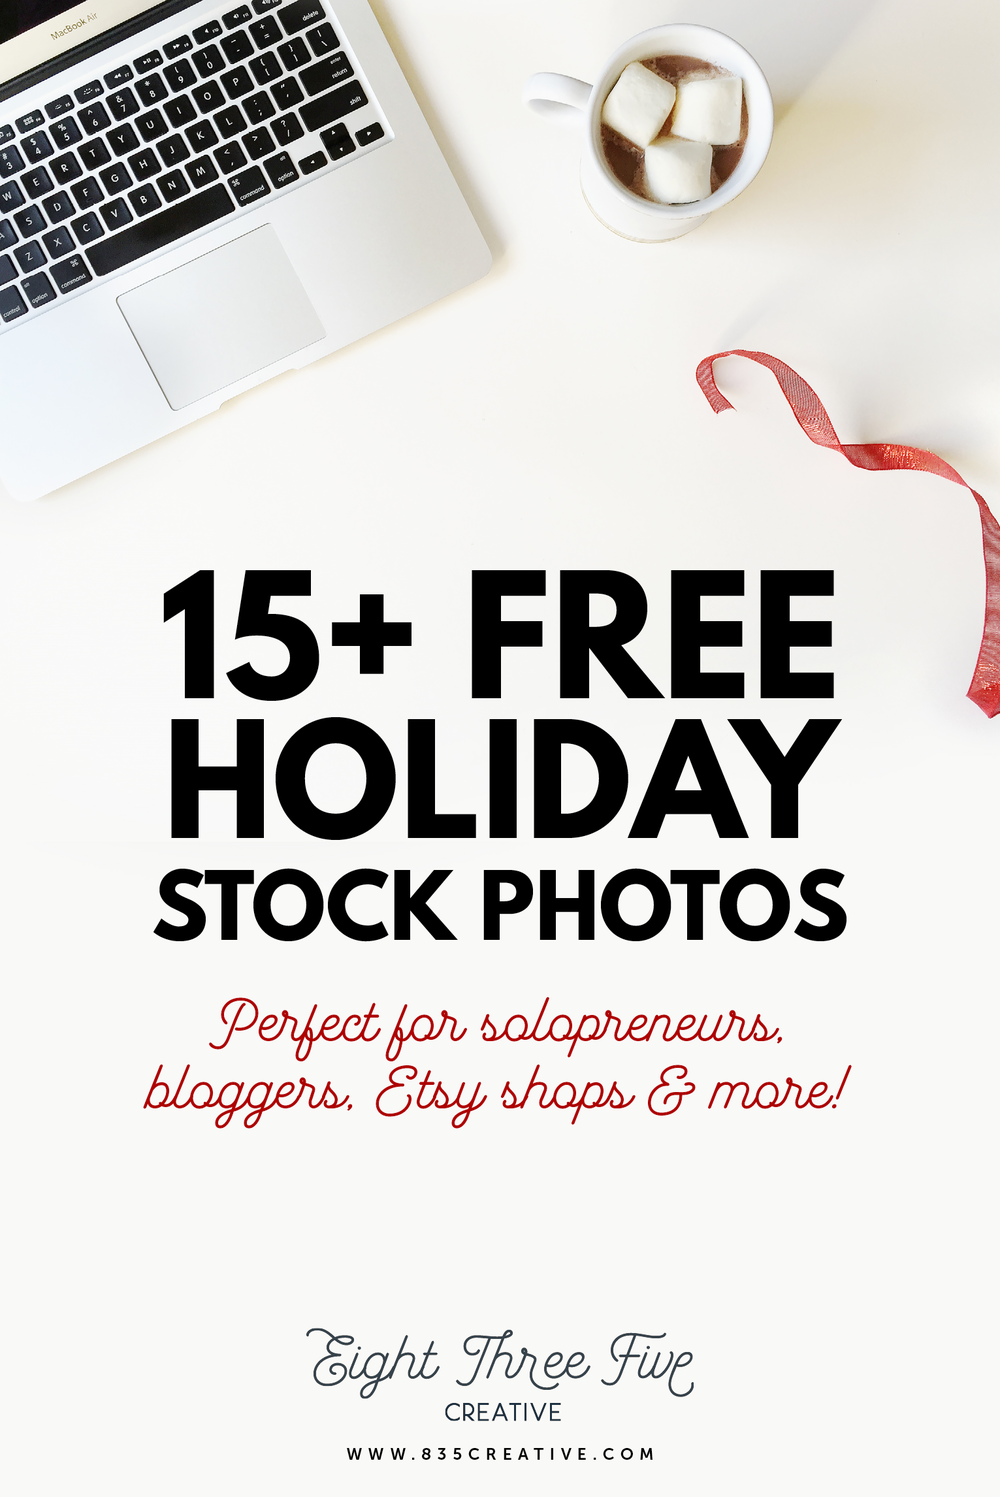 Free Stock Images for Holidays, Christmas, December for Etsy Shops, Solopreneurs, Bloggers, Small Businesses